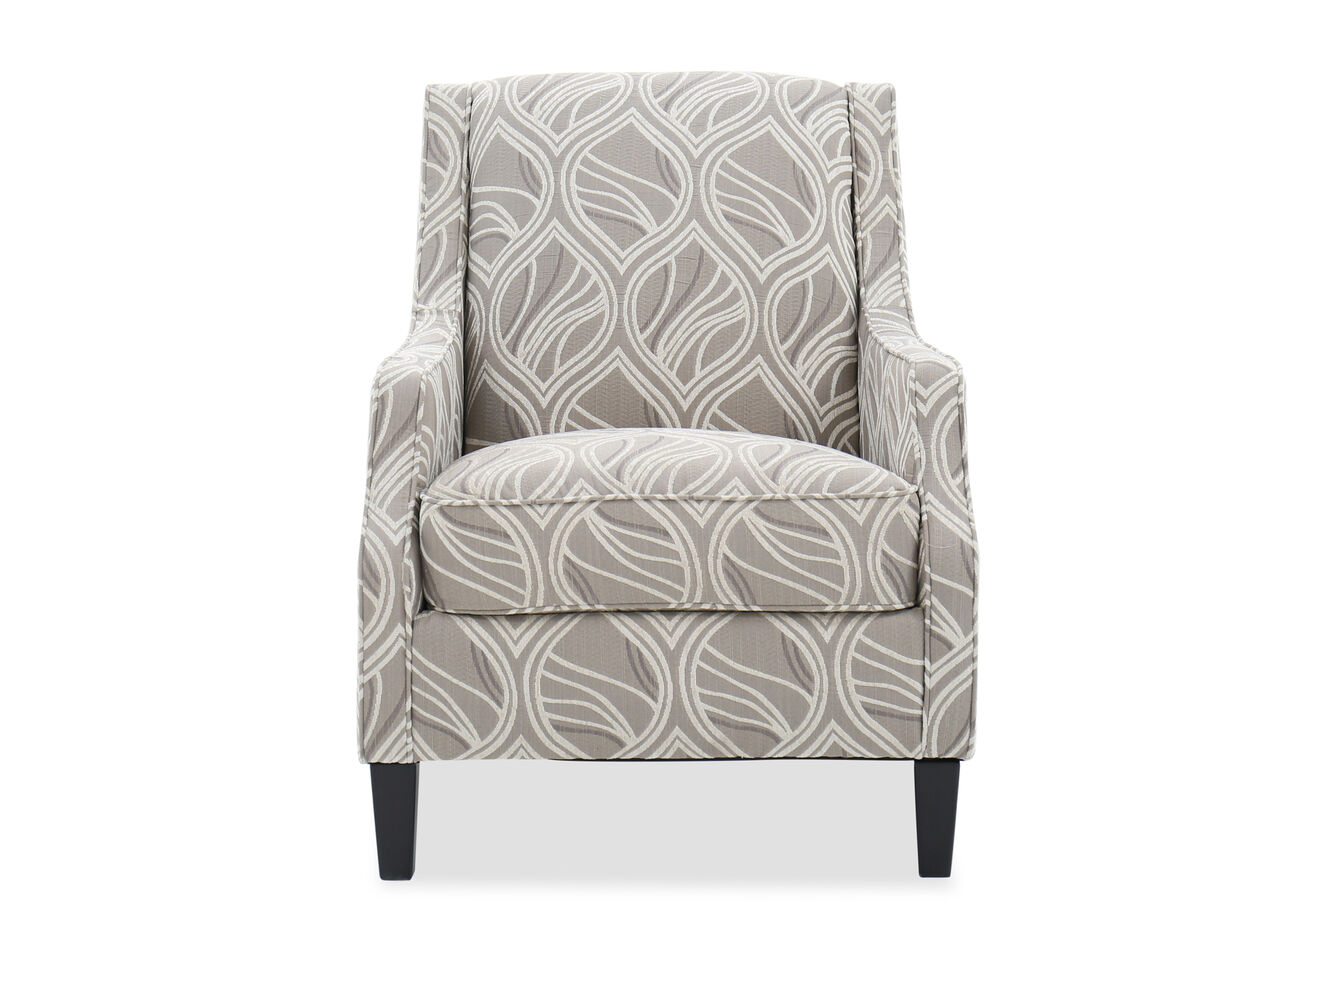 Swivel Chairs Living Room Living Room Chairs Swivel Chairs Mathis Brothers